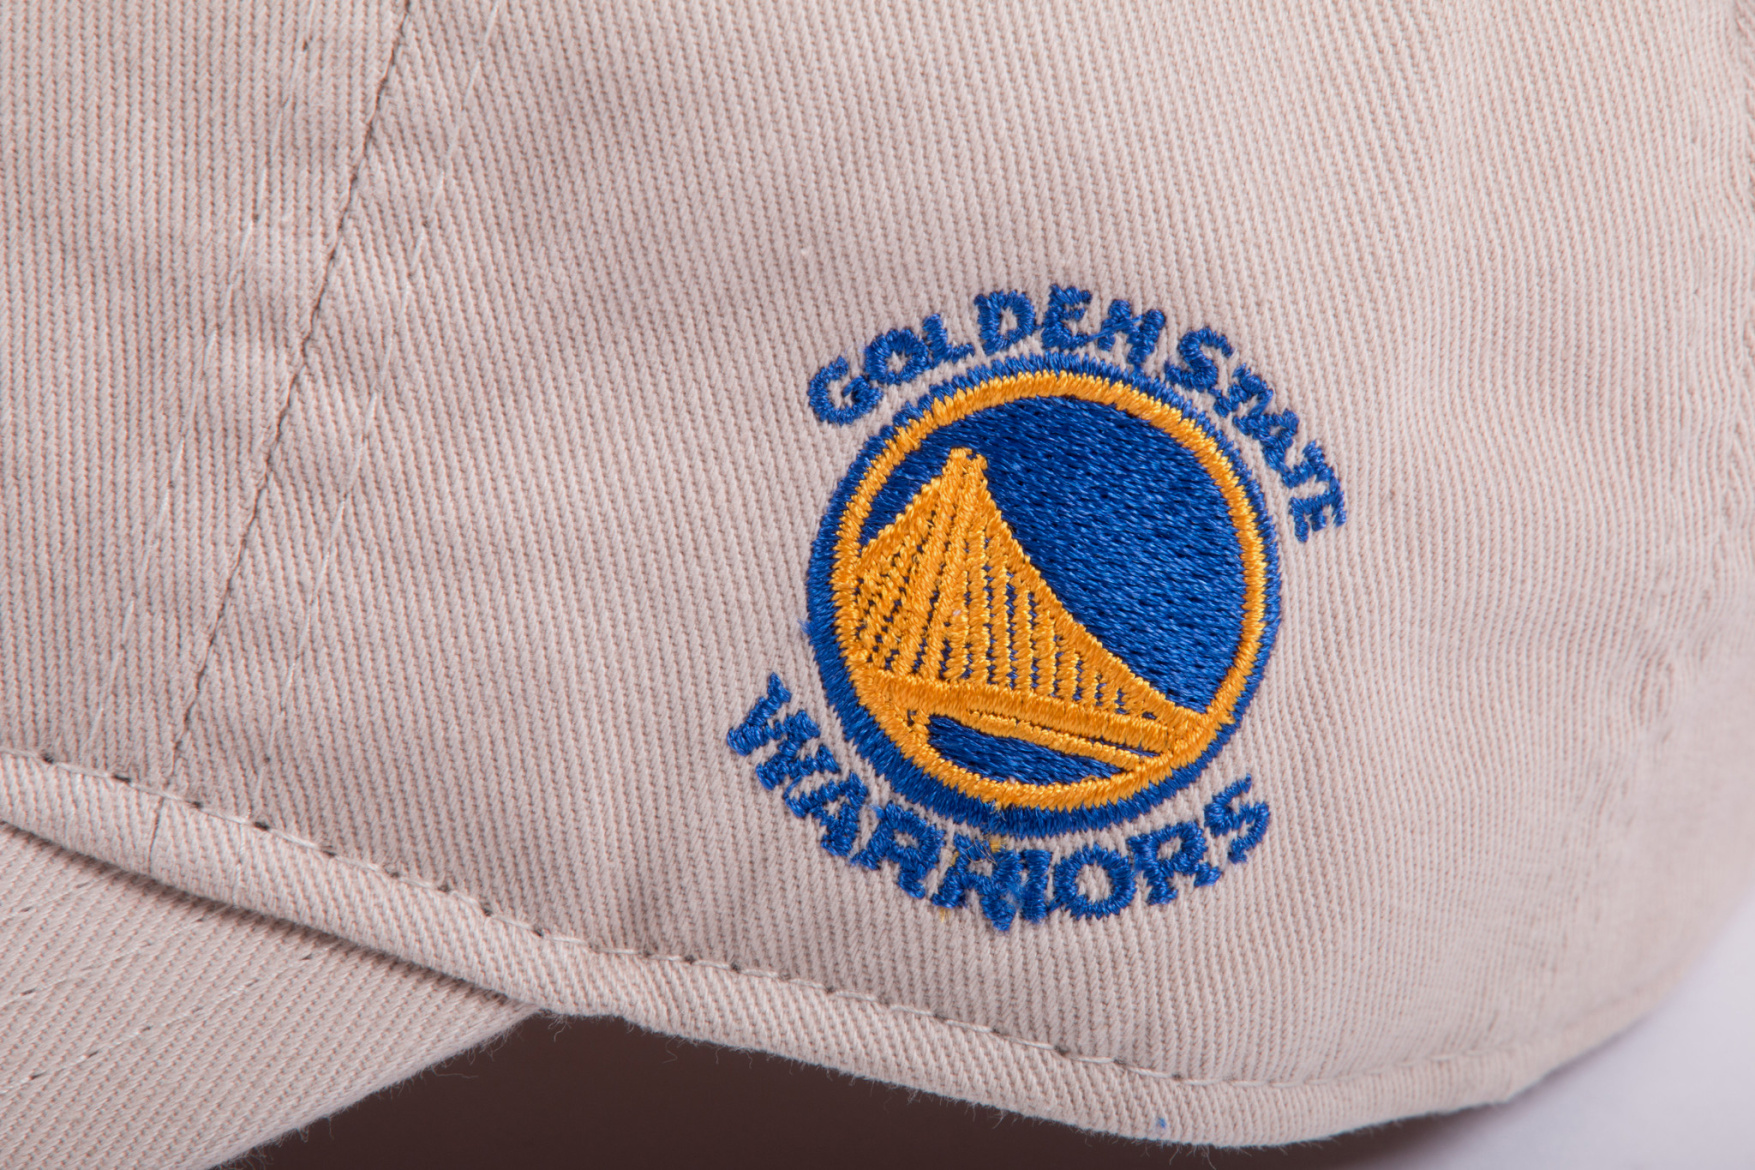 adidas-lebron-james-kobe-bryant-kevin-durant-steph-curry-dad-hats-013